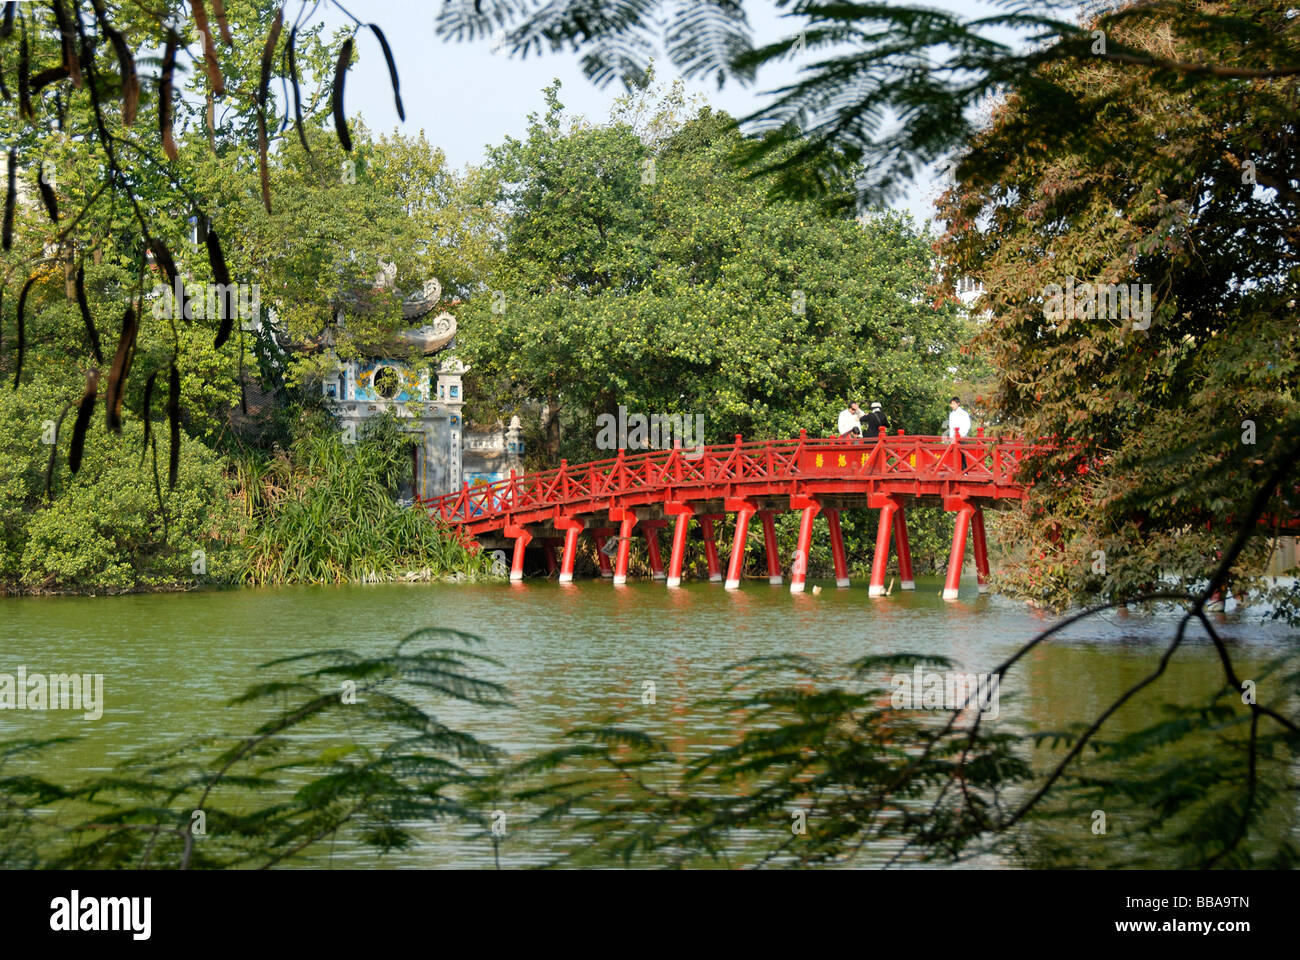 Buddhism, red wooden bridge with entrance tower to the Ngoc Son Temple, Hoan Kiem Lake, Hanoi, Vietnam, Southeast - Stock Image